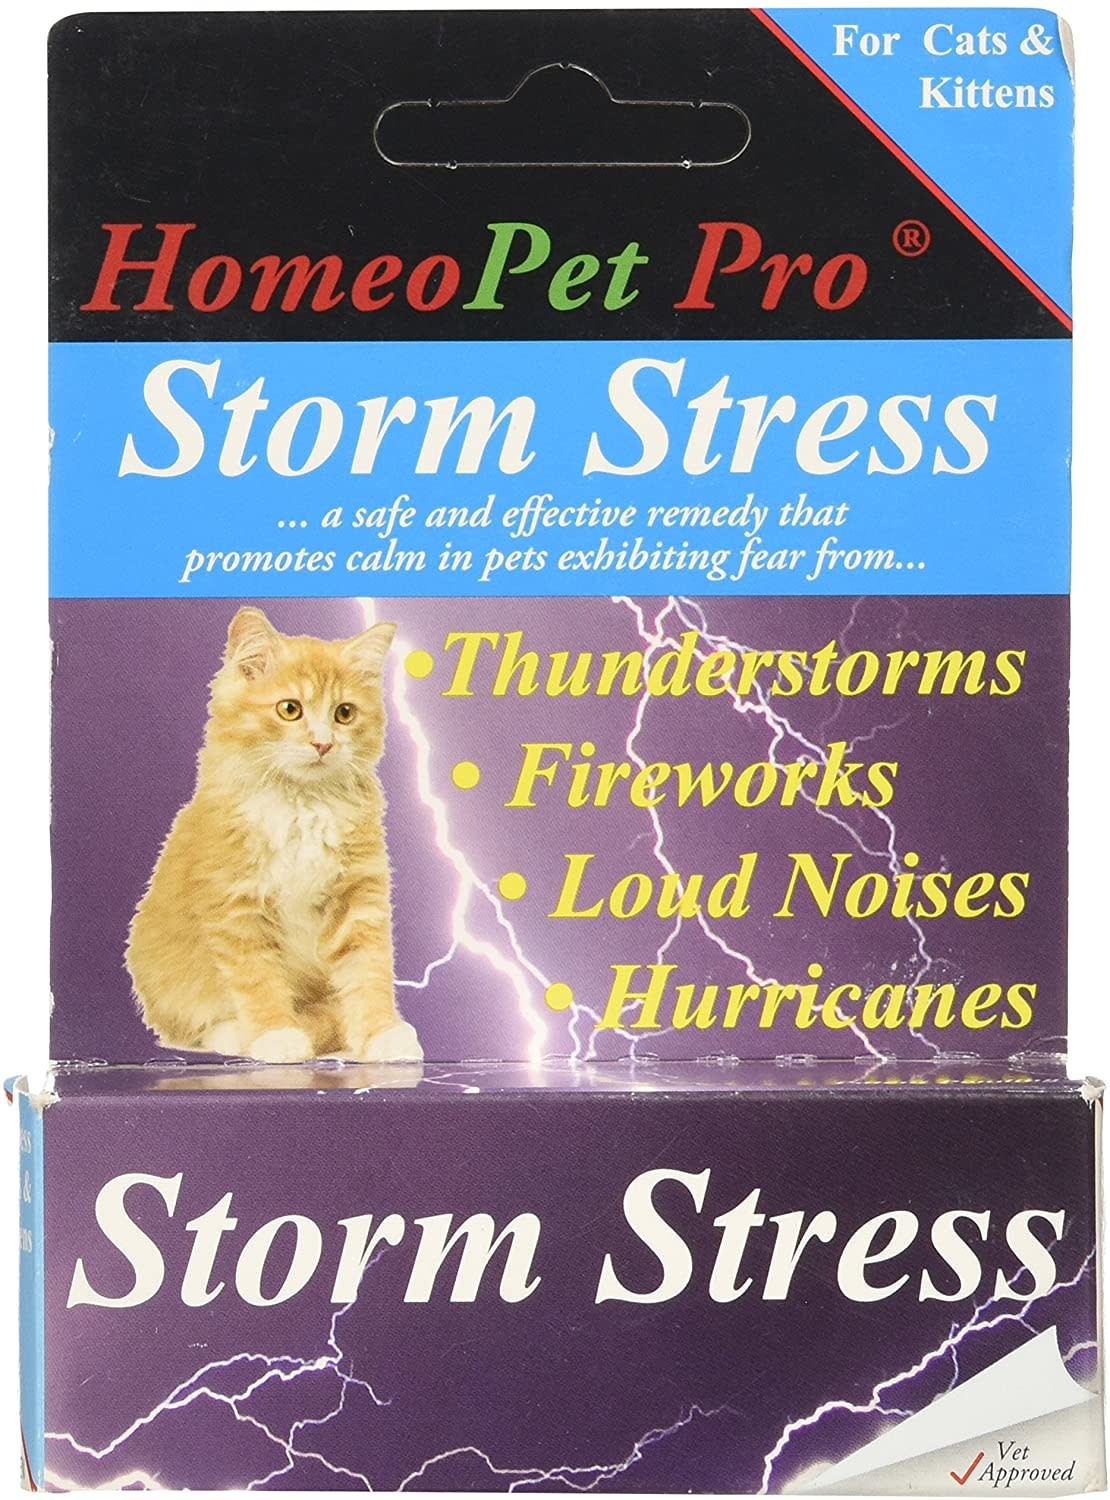 HomeoPet Pro Storm Stress for Cats & Kittens-1